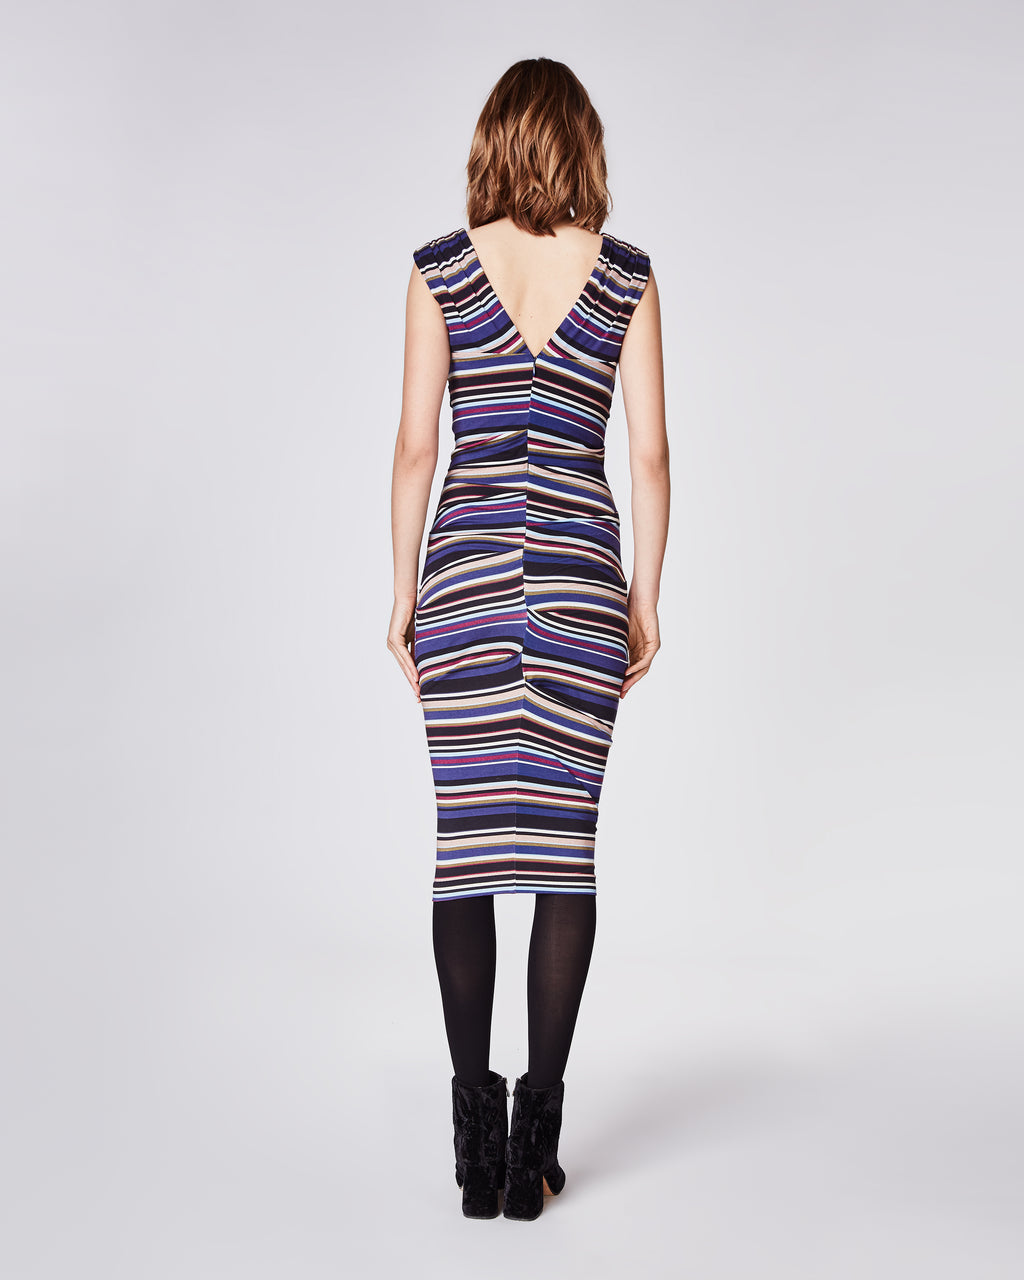 BI10146 - FLIGHT STRIPE TUCK DRESS - dresses - midi - Tailored to create a figure-flattering fit, this dress falls to a midi length. Crafted with skillful ticking, this striped dress is perfect for transitional weather. Finished with a concealed zipper for closure.